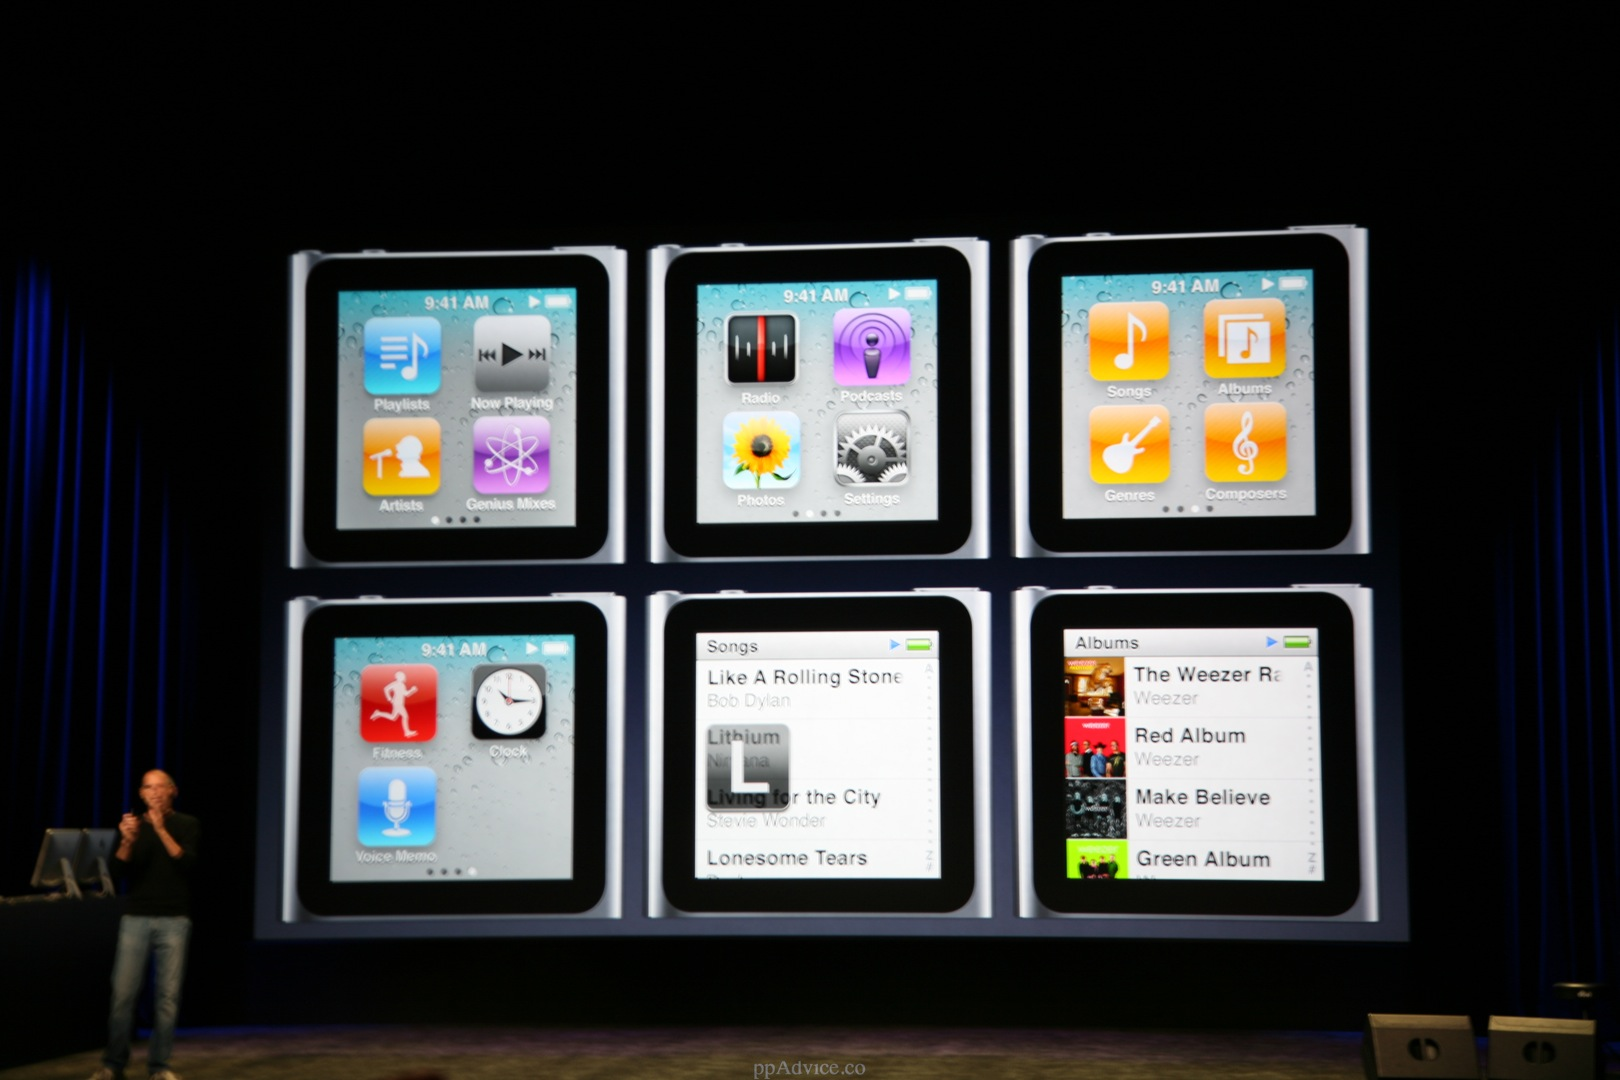 how to add apps to ipod nano